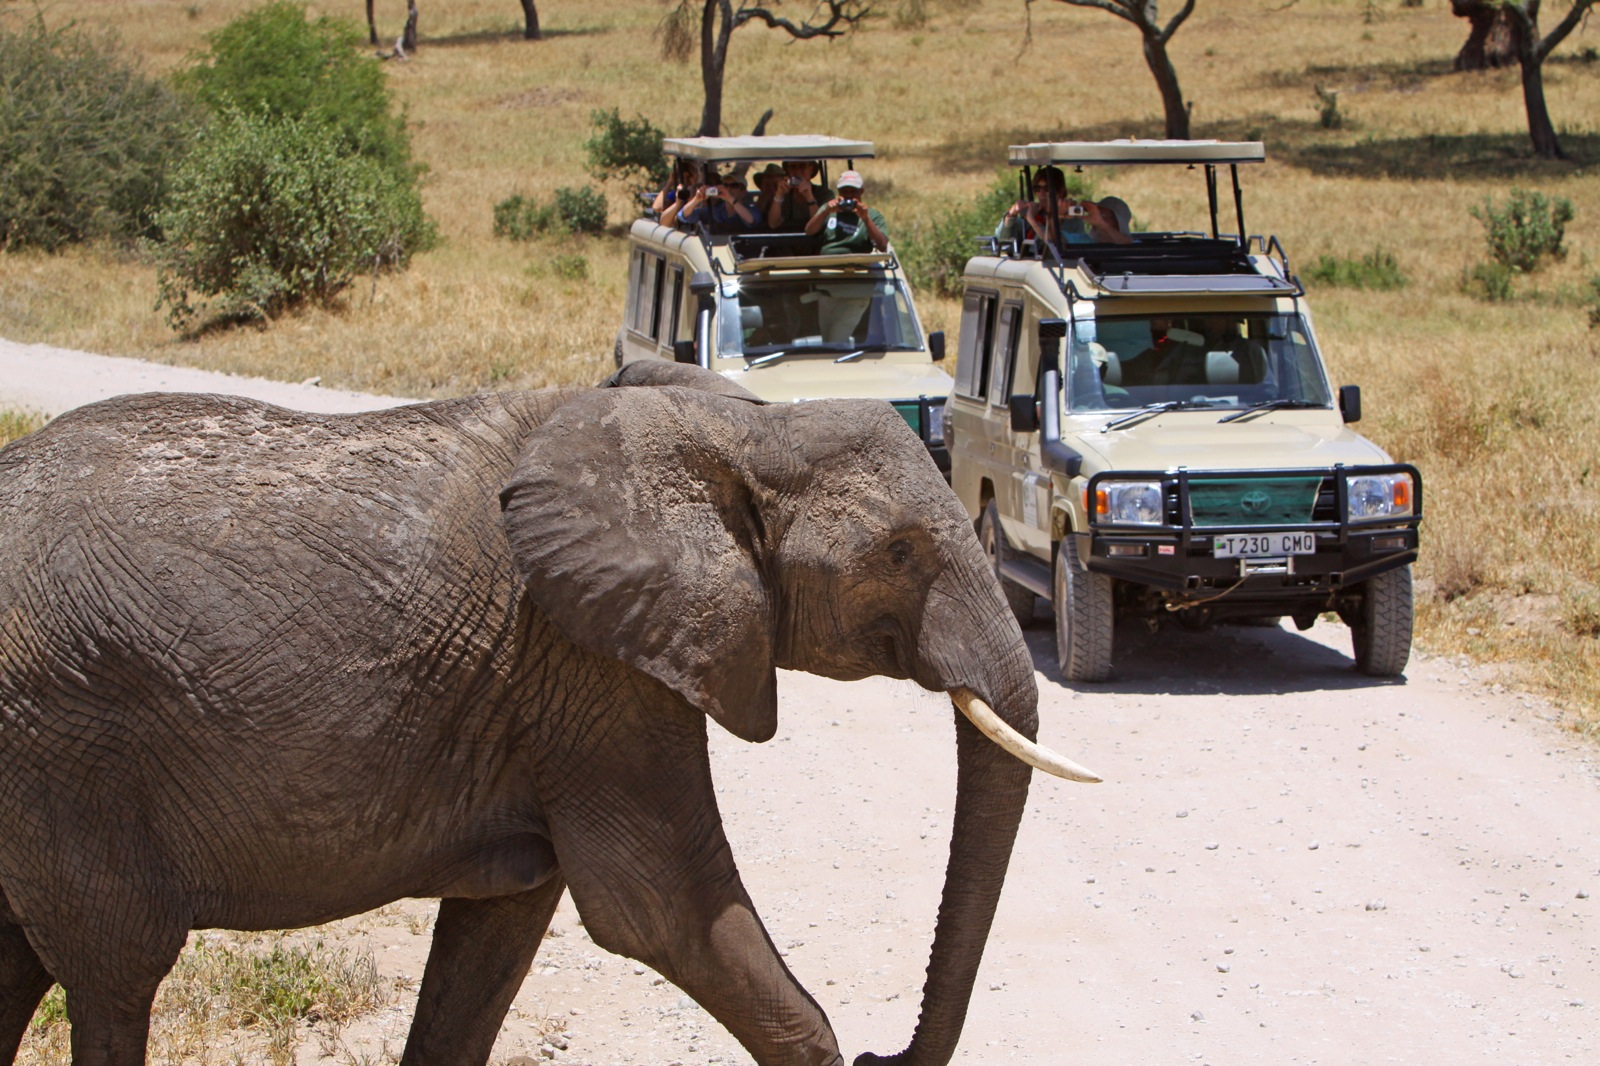 People peek out of the tops of two safari Land Cruisers to take photos of an elephant crossing the road in front of them.